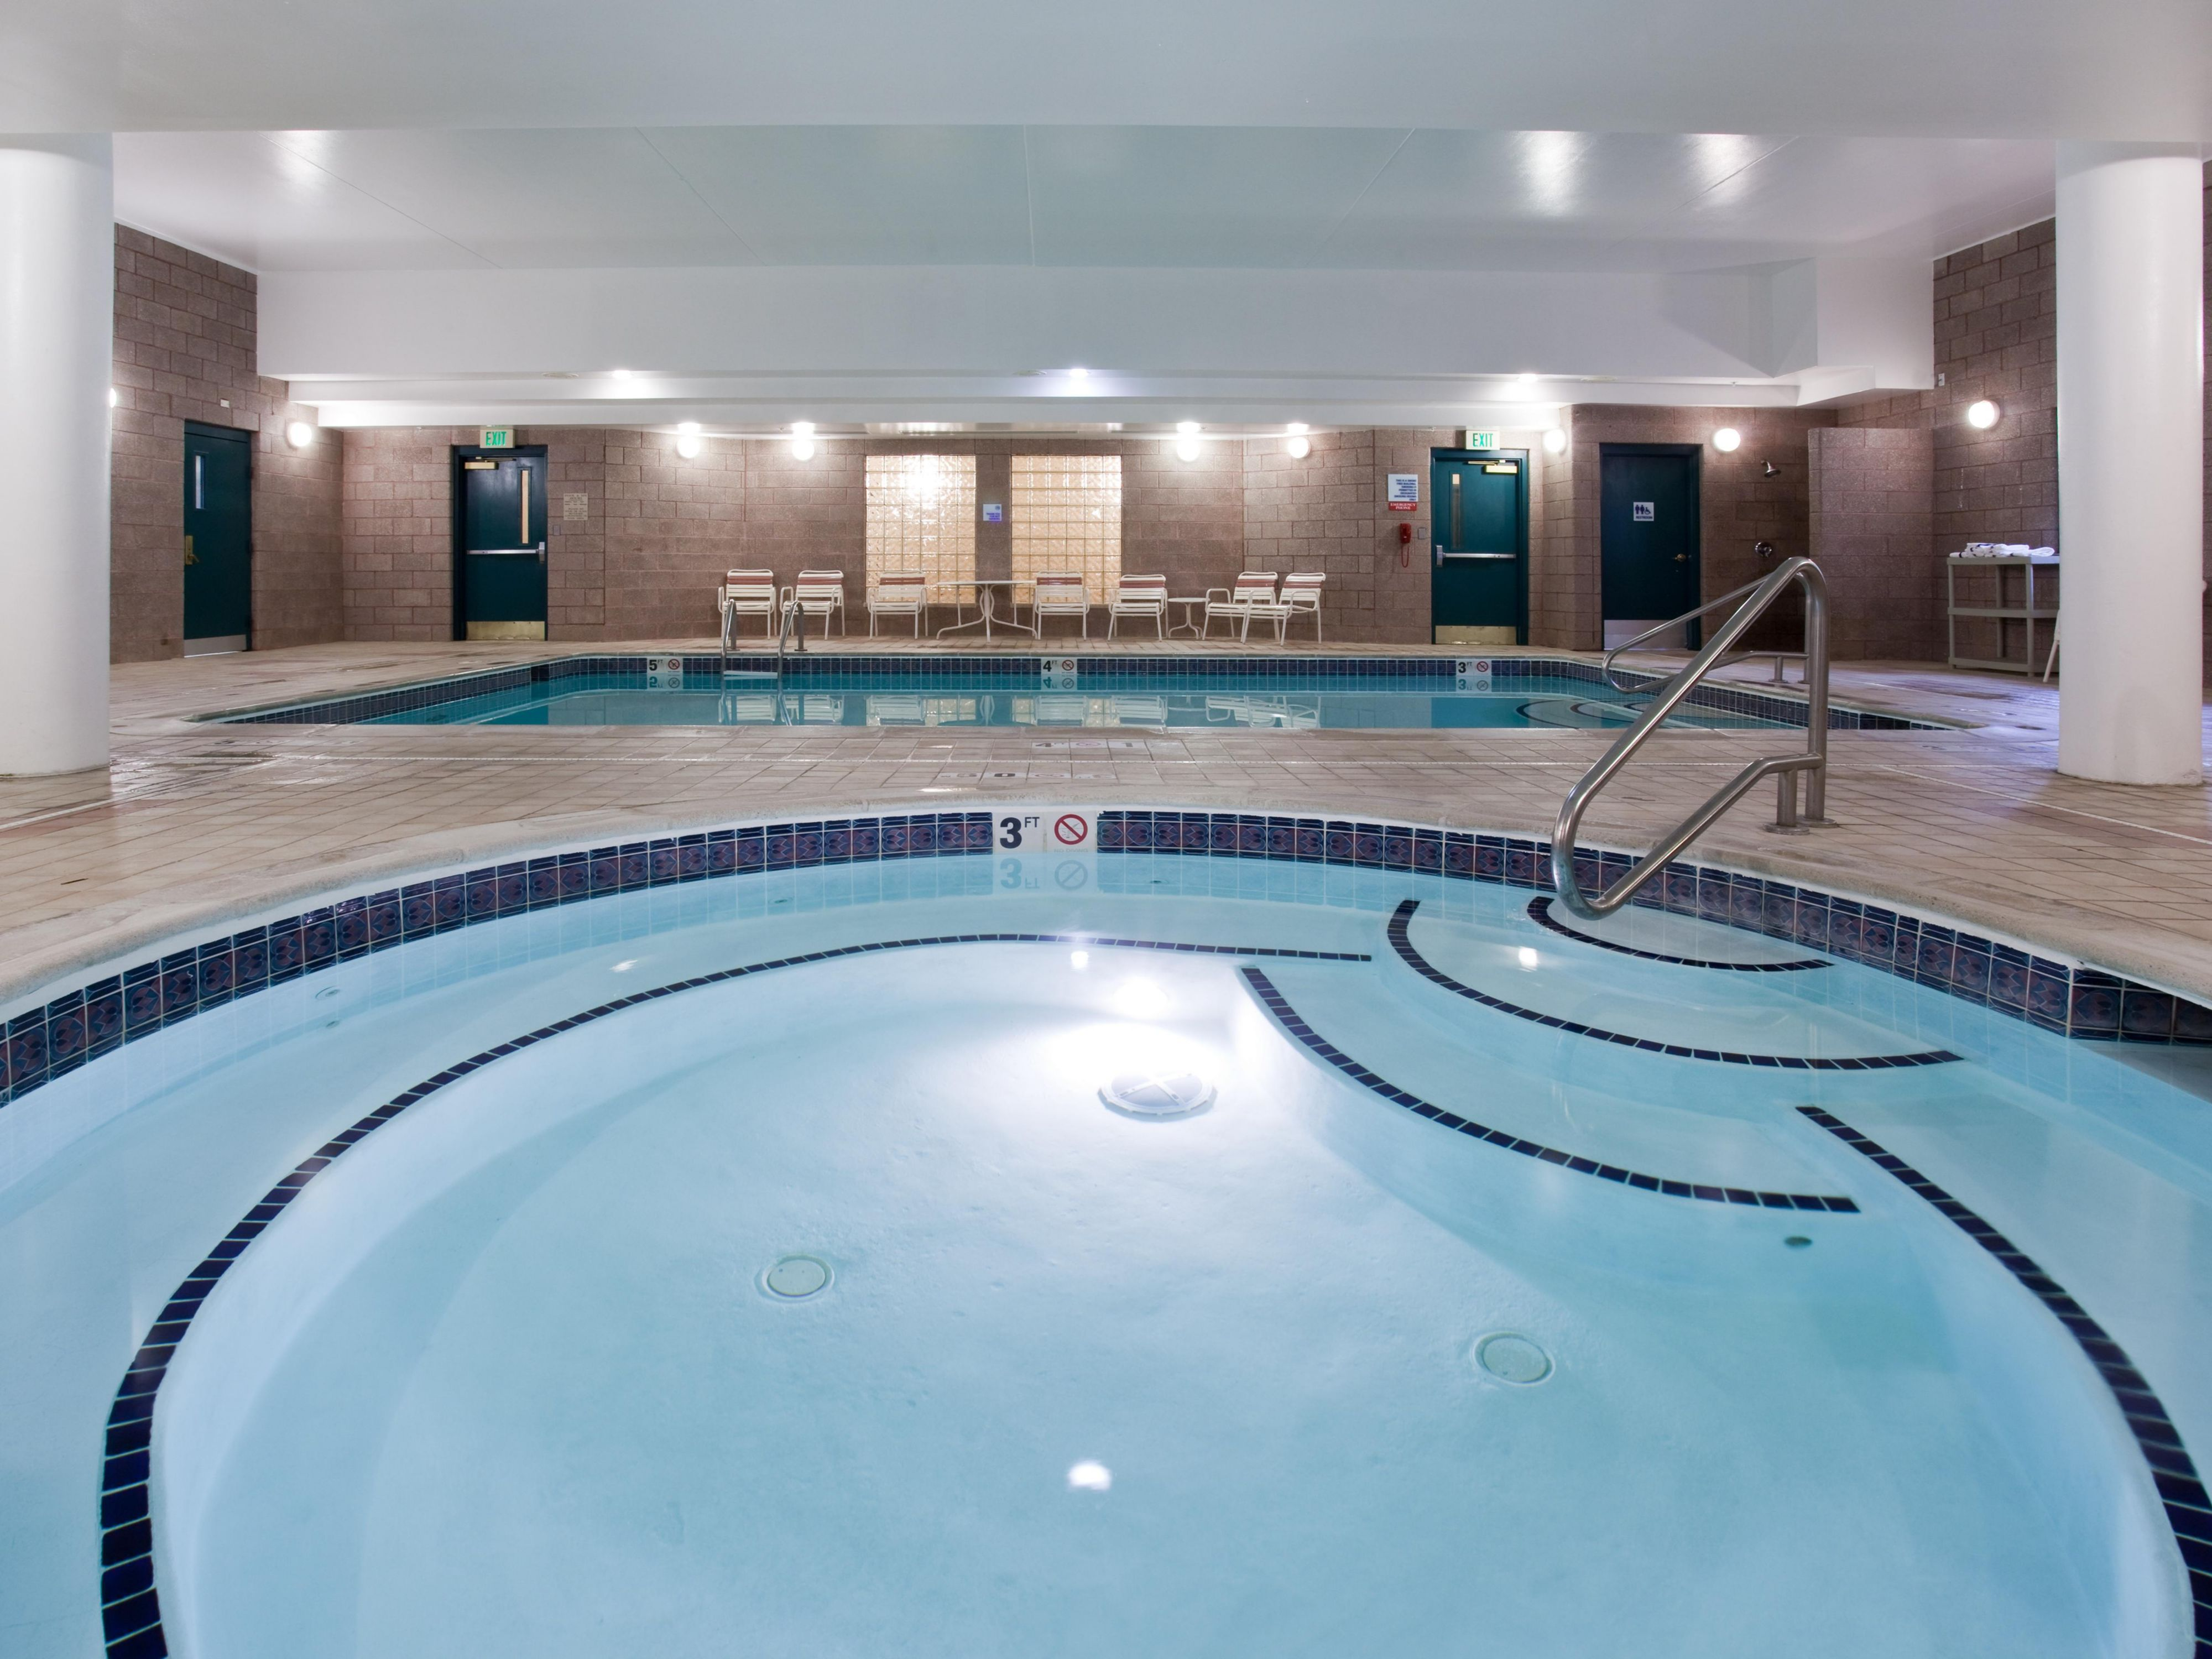 Holiday Inn Express Denver Tech Center-Englewood Pool and Spa